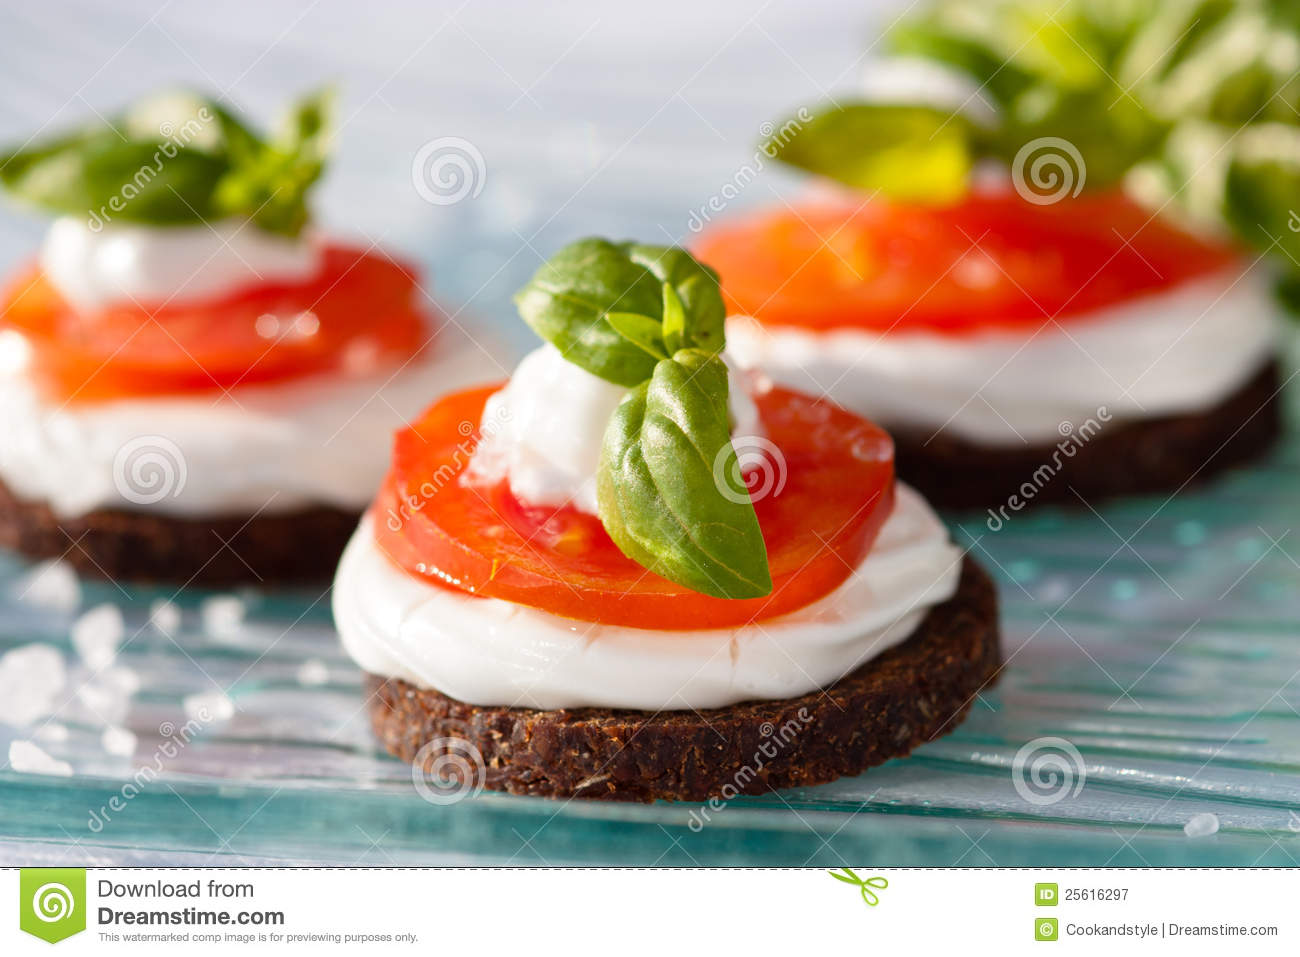 Tomato canape royalty free stock photography image 25616297 for Mozzarella canape